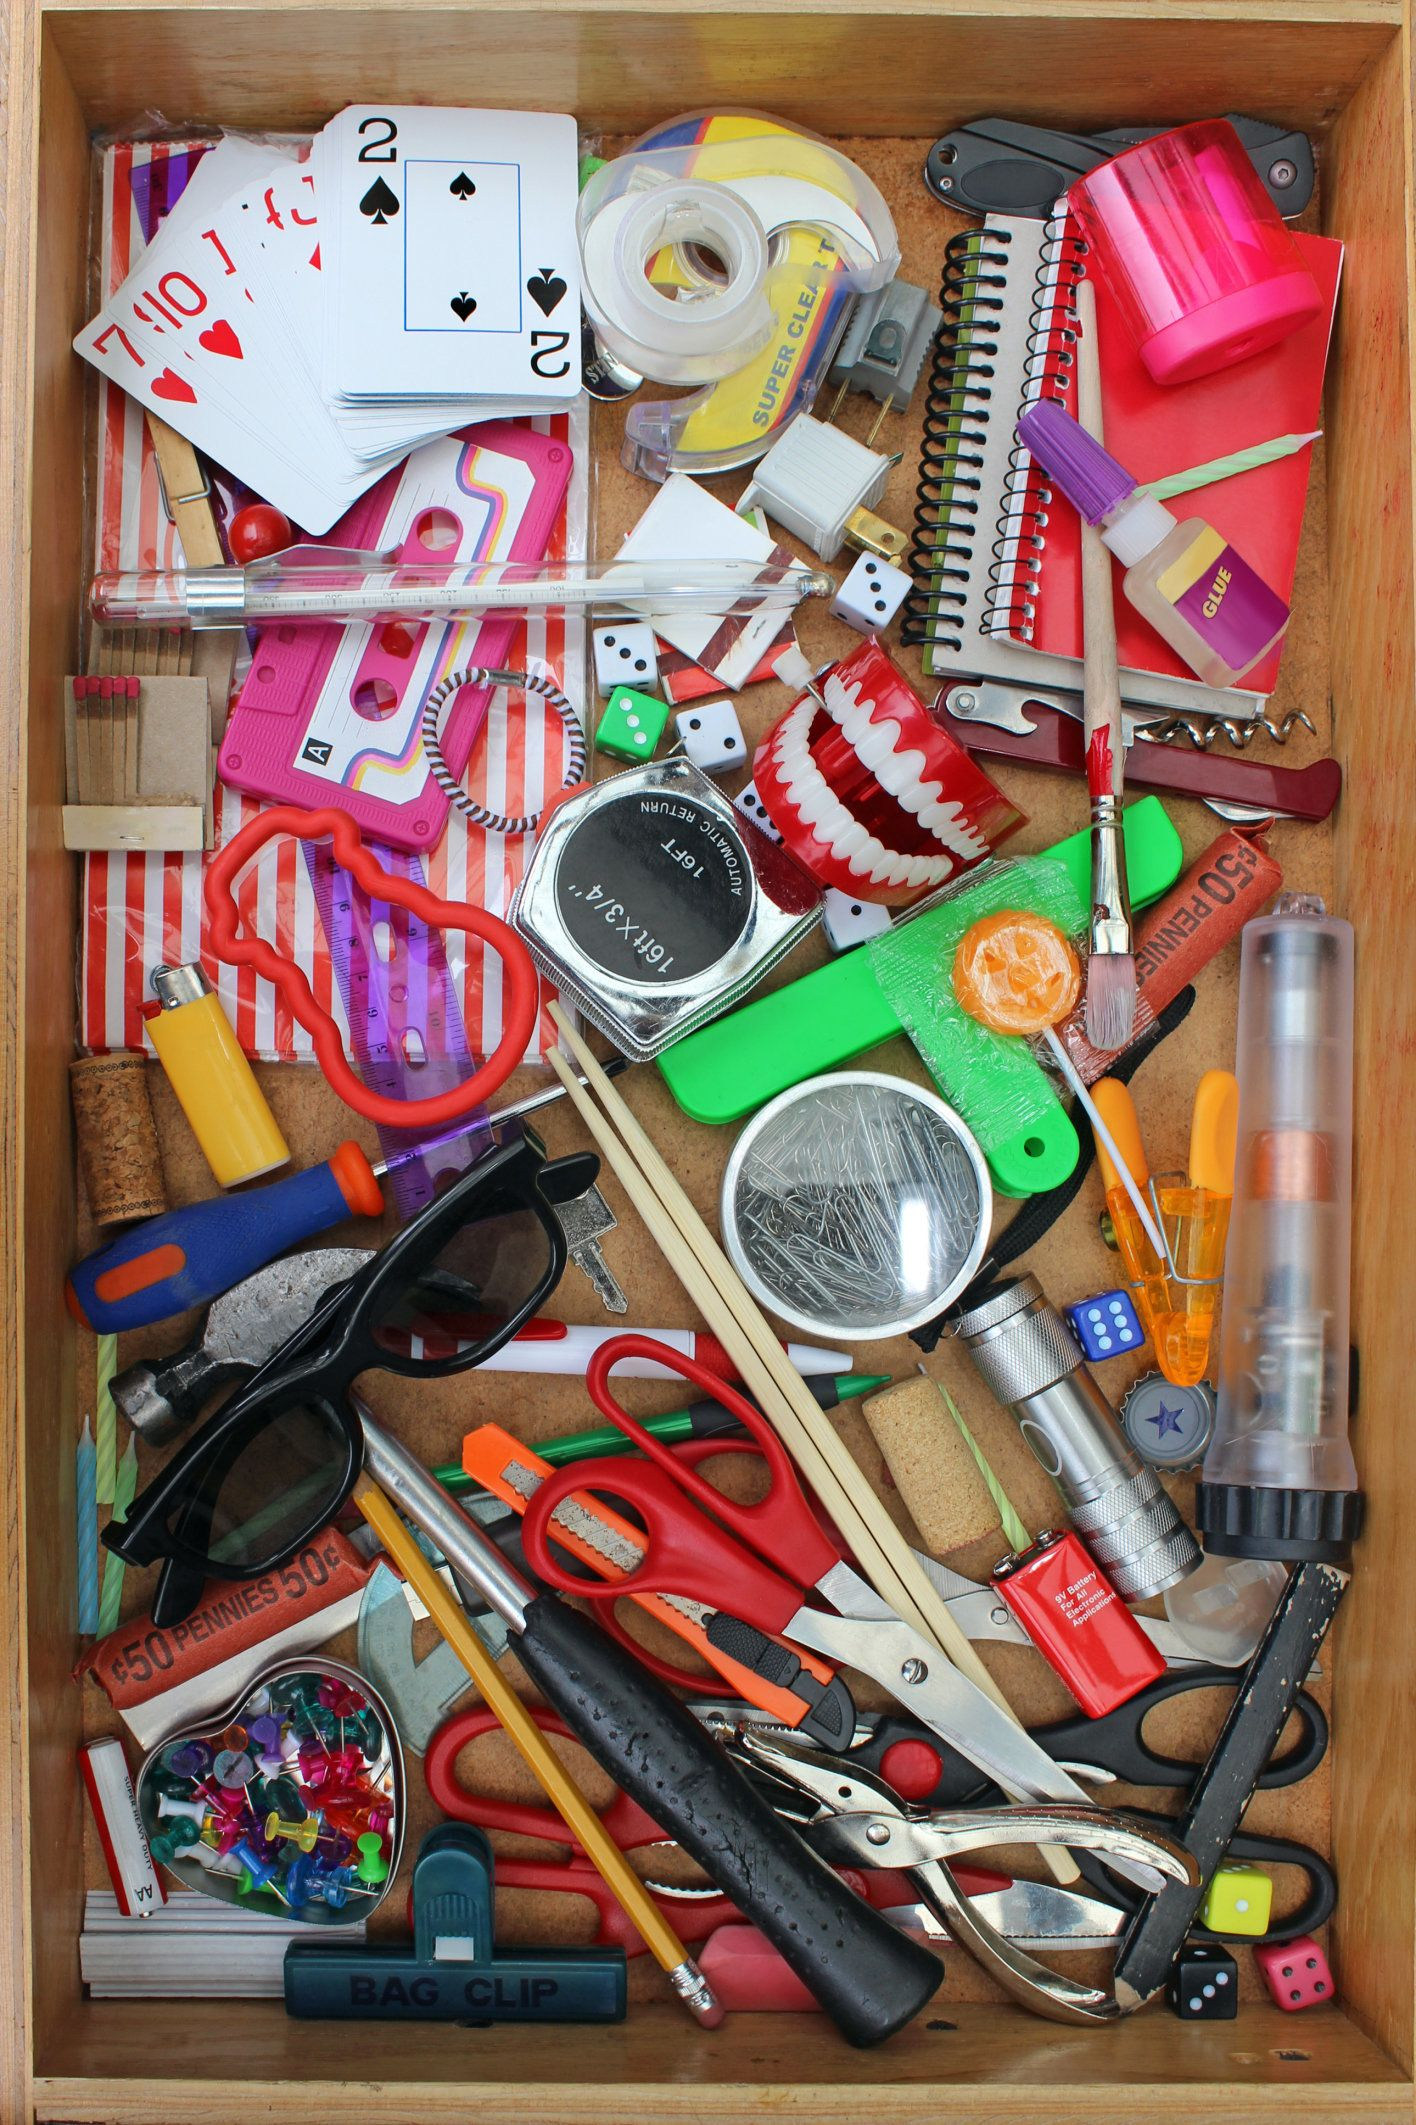 Junk drawer full of various household objects.